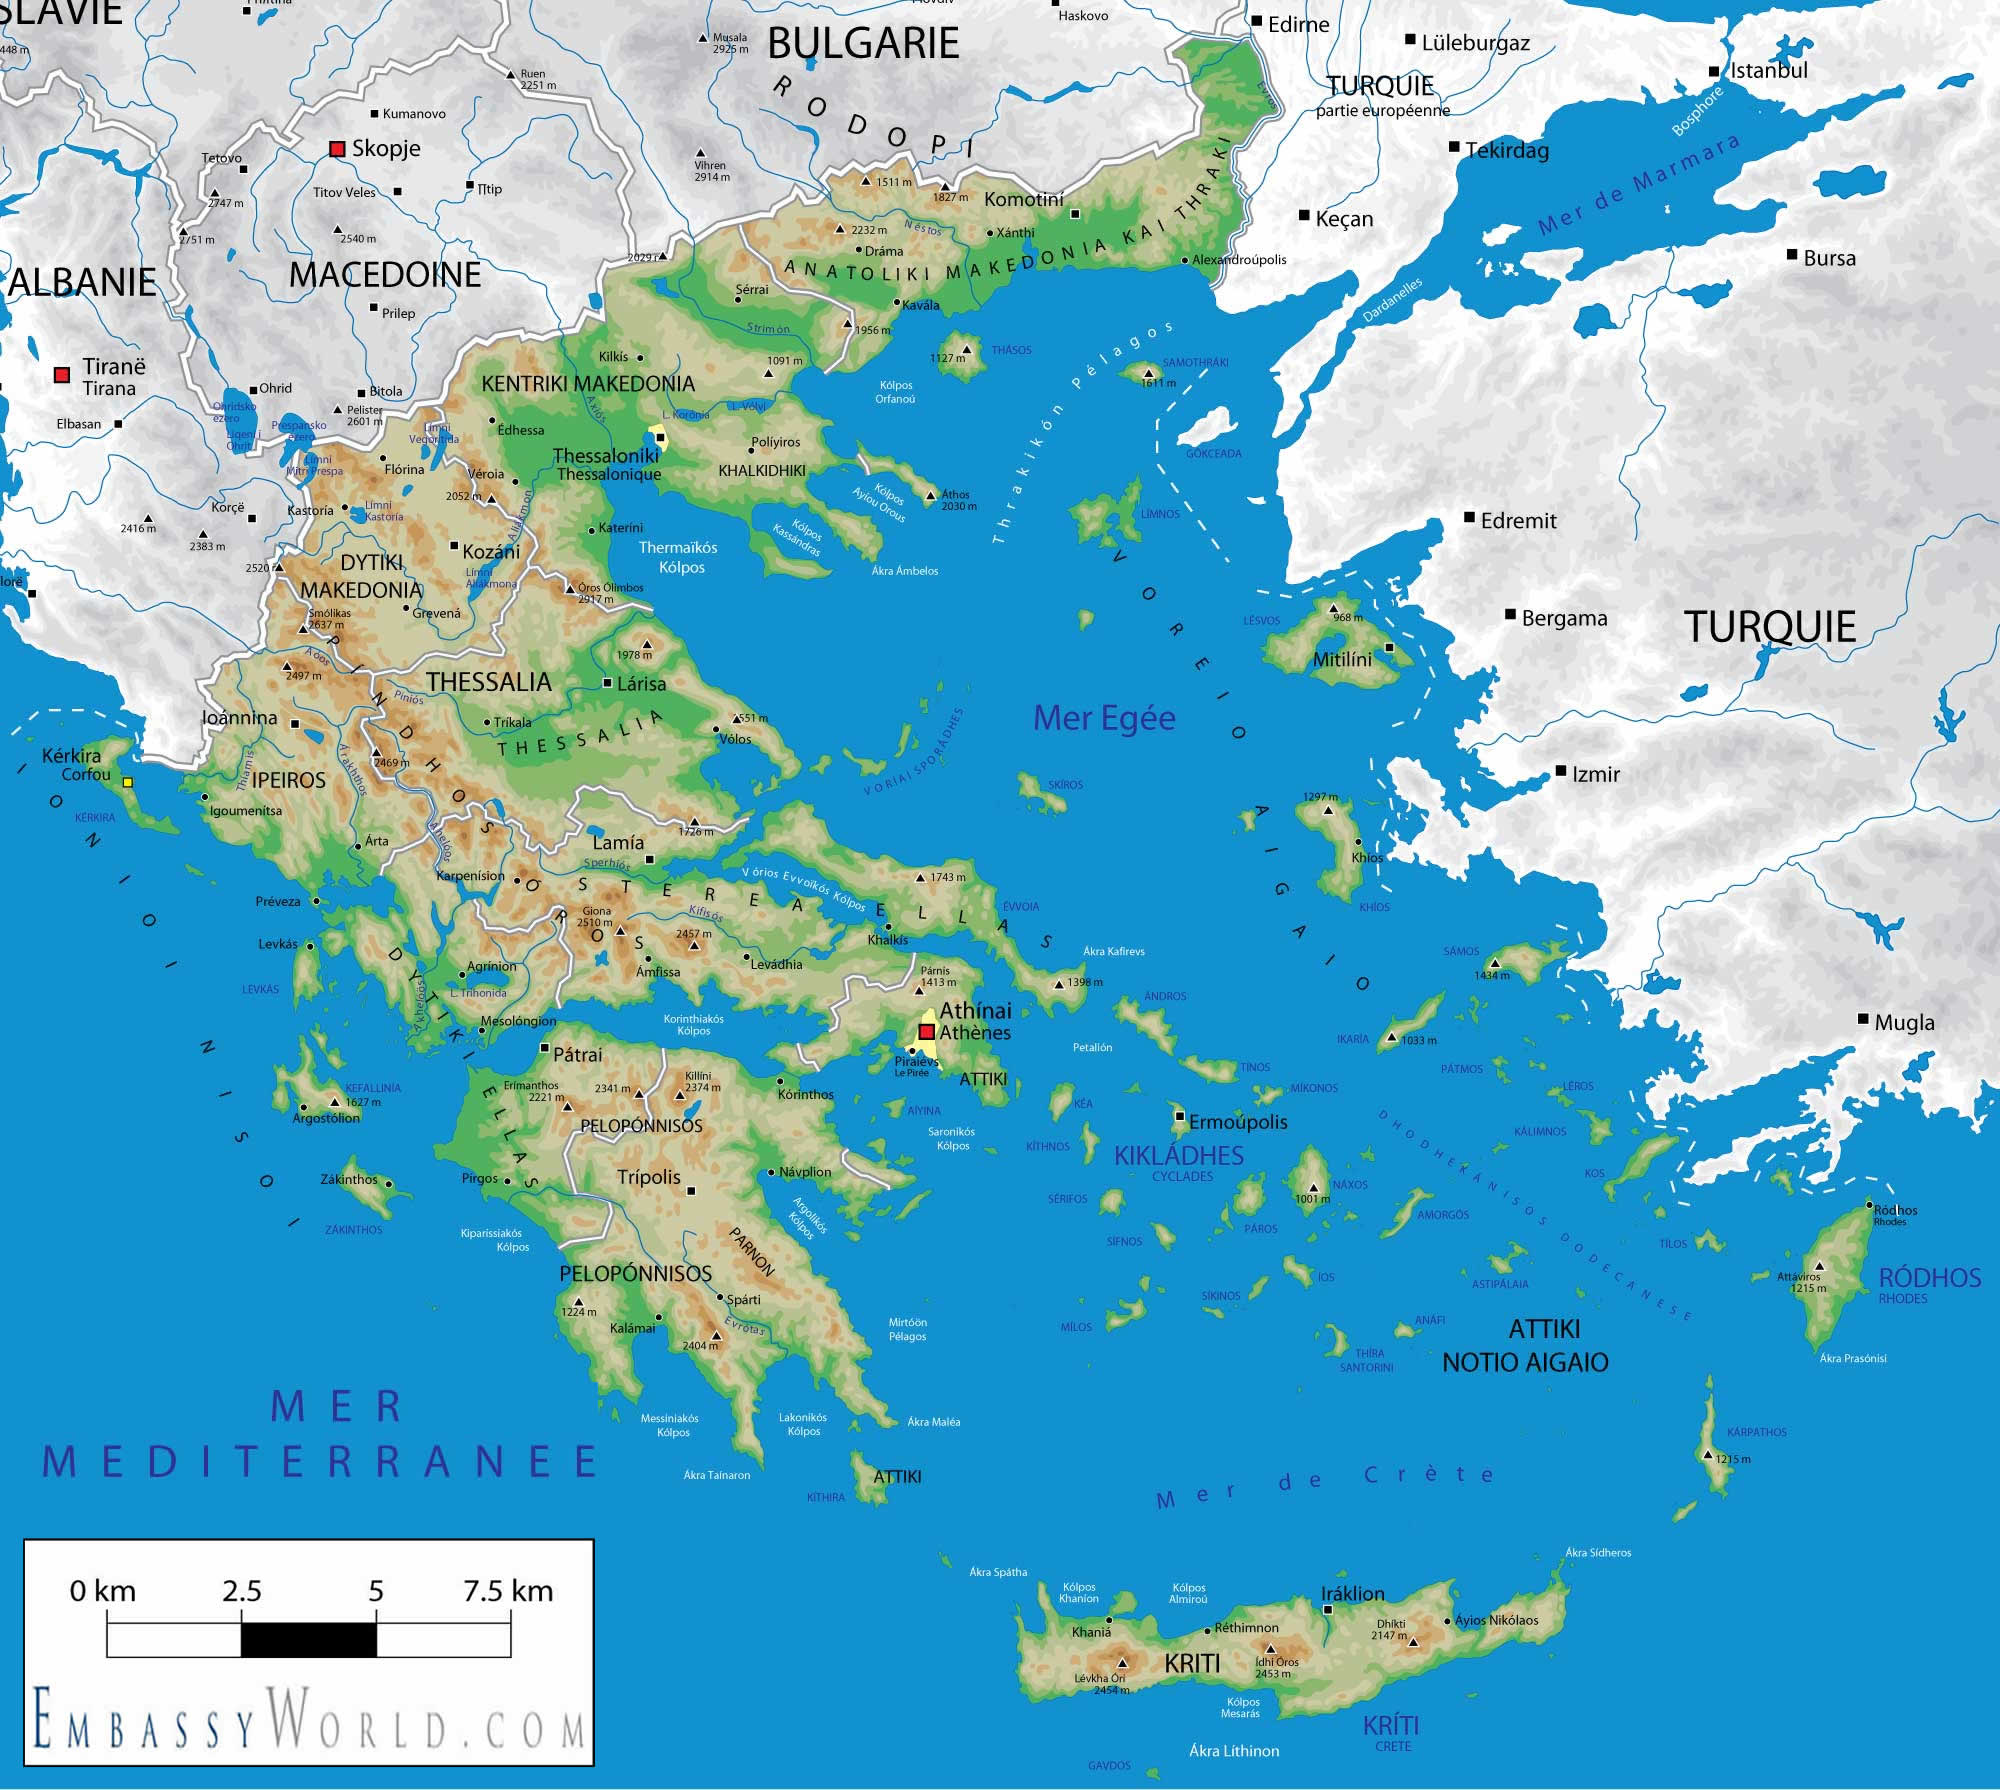 Physical Map Of Greece | galleryhip.com - The Hippest Galleries!